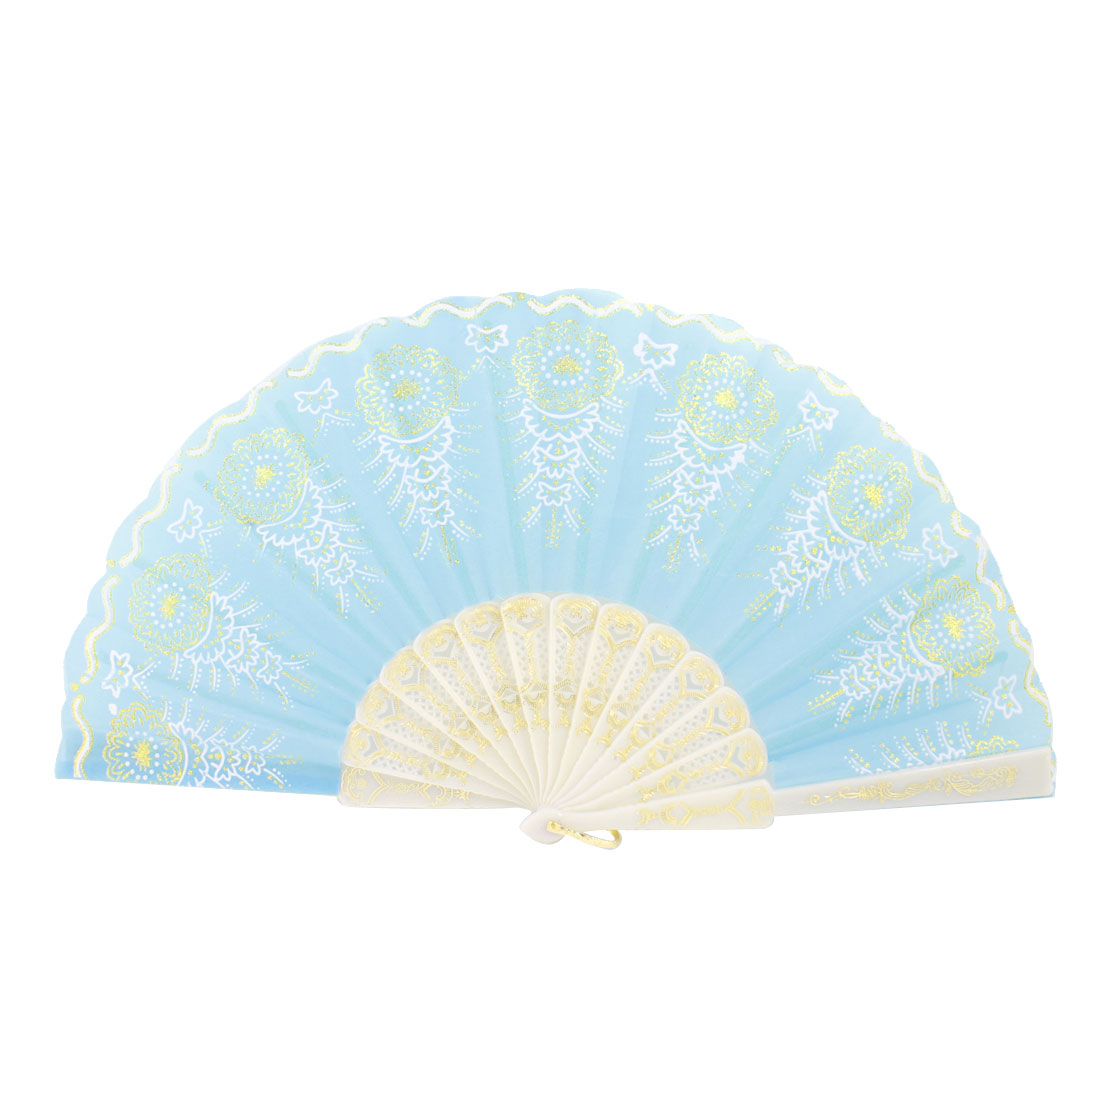 Plastic Rib Gold Tone Glittery Powder Decor Floral Pattern Folding Hand Fan Teal White